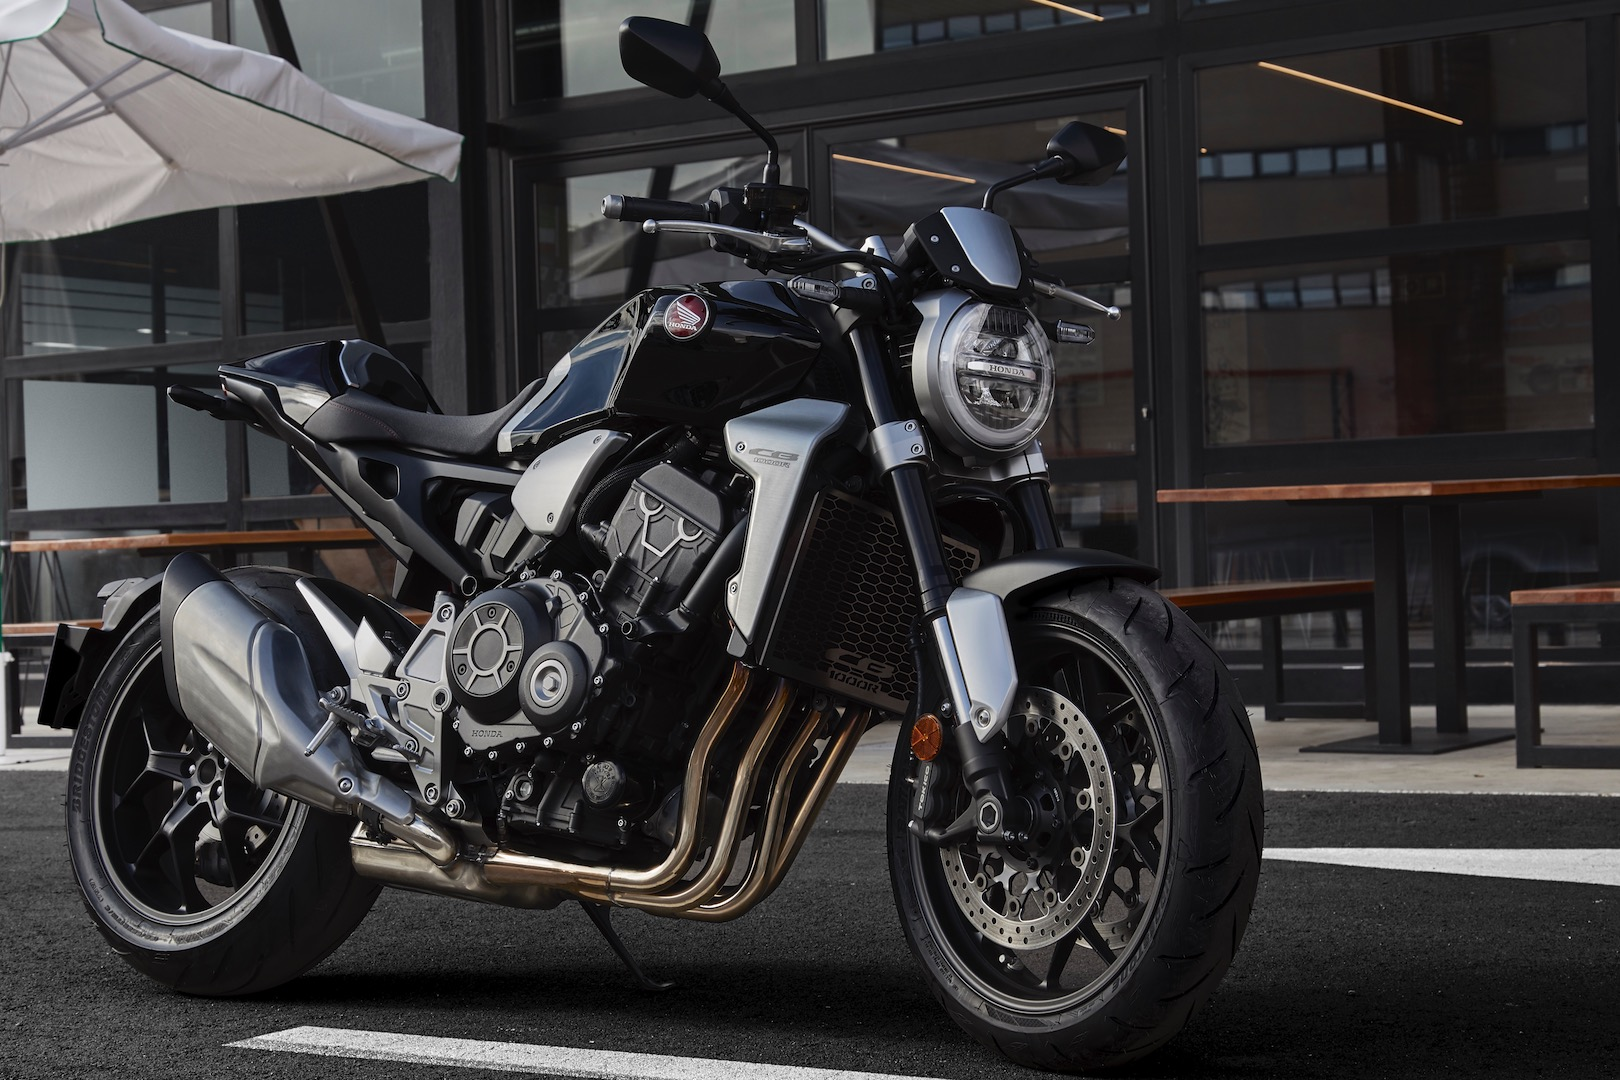 2018 Honda Cb1000r First Look 14 Fast Facts